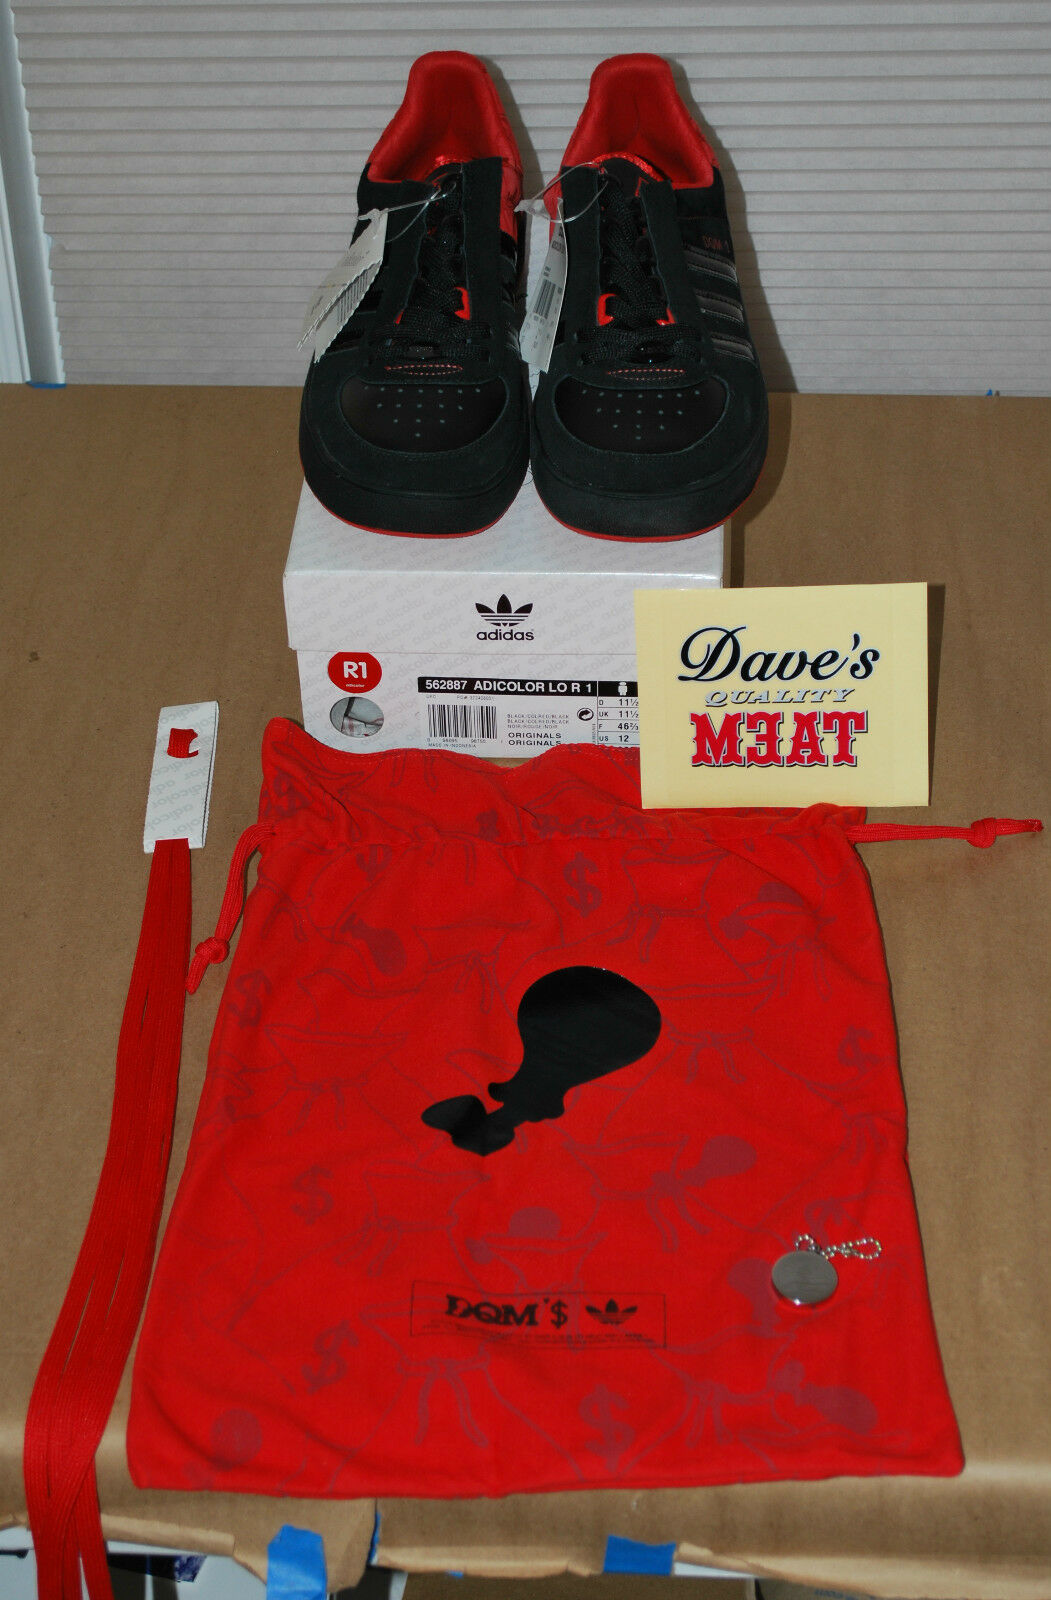 ADIDAS x J MONEY x DQM Adicolor Lo R1 Dave's Quality Meat 2006 - Size 12